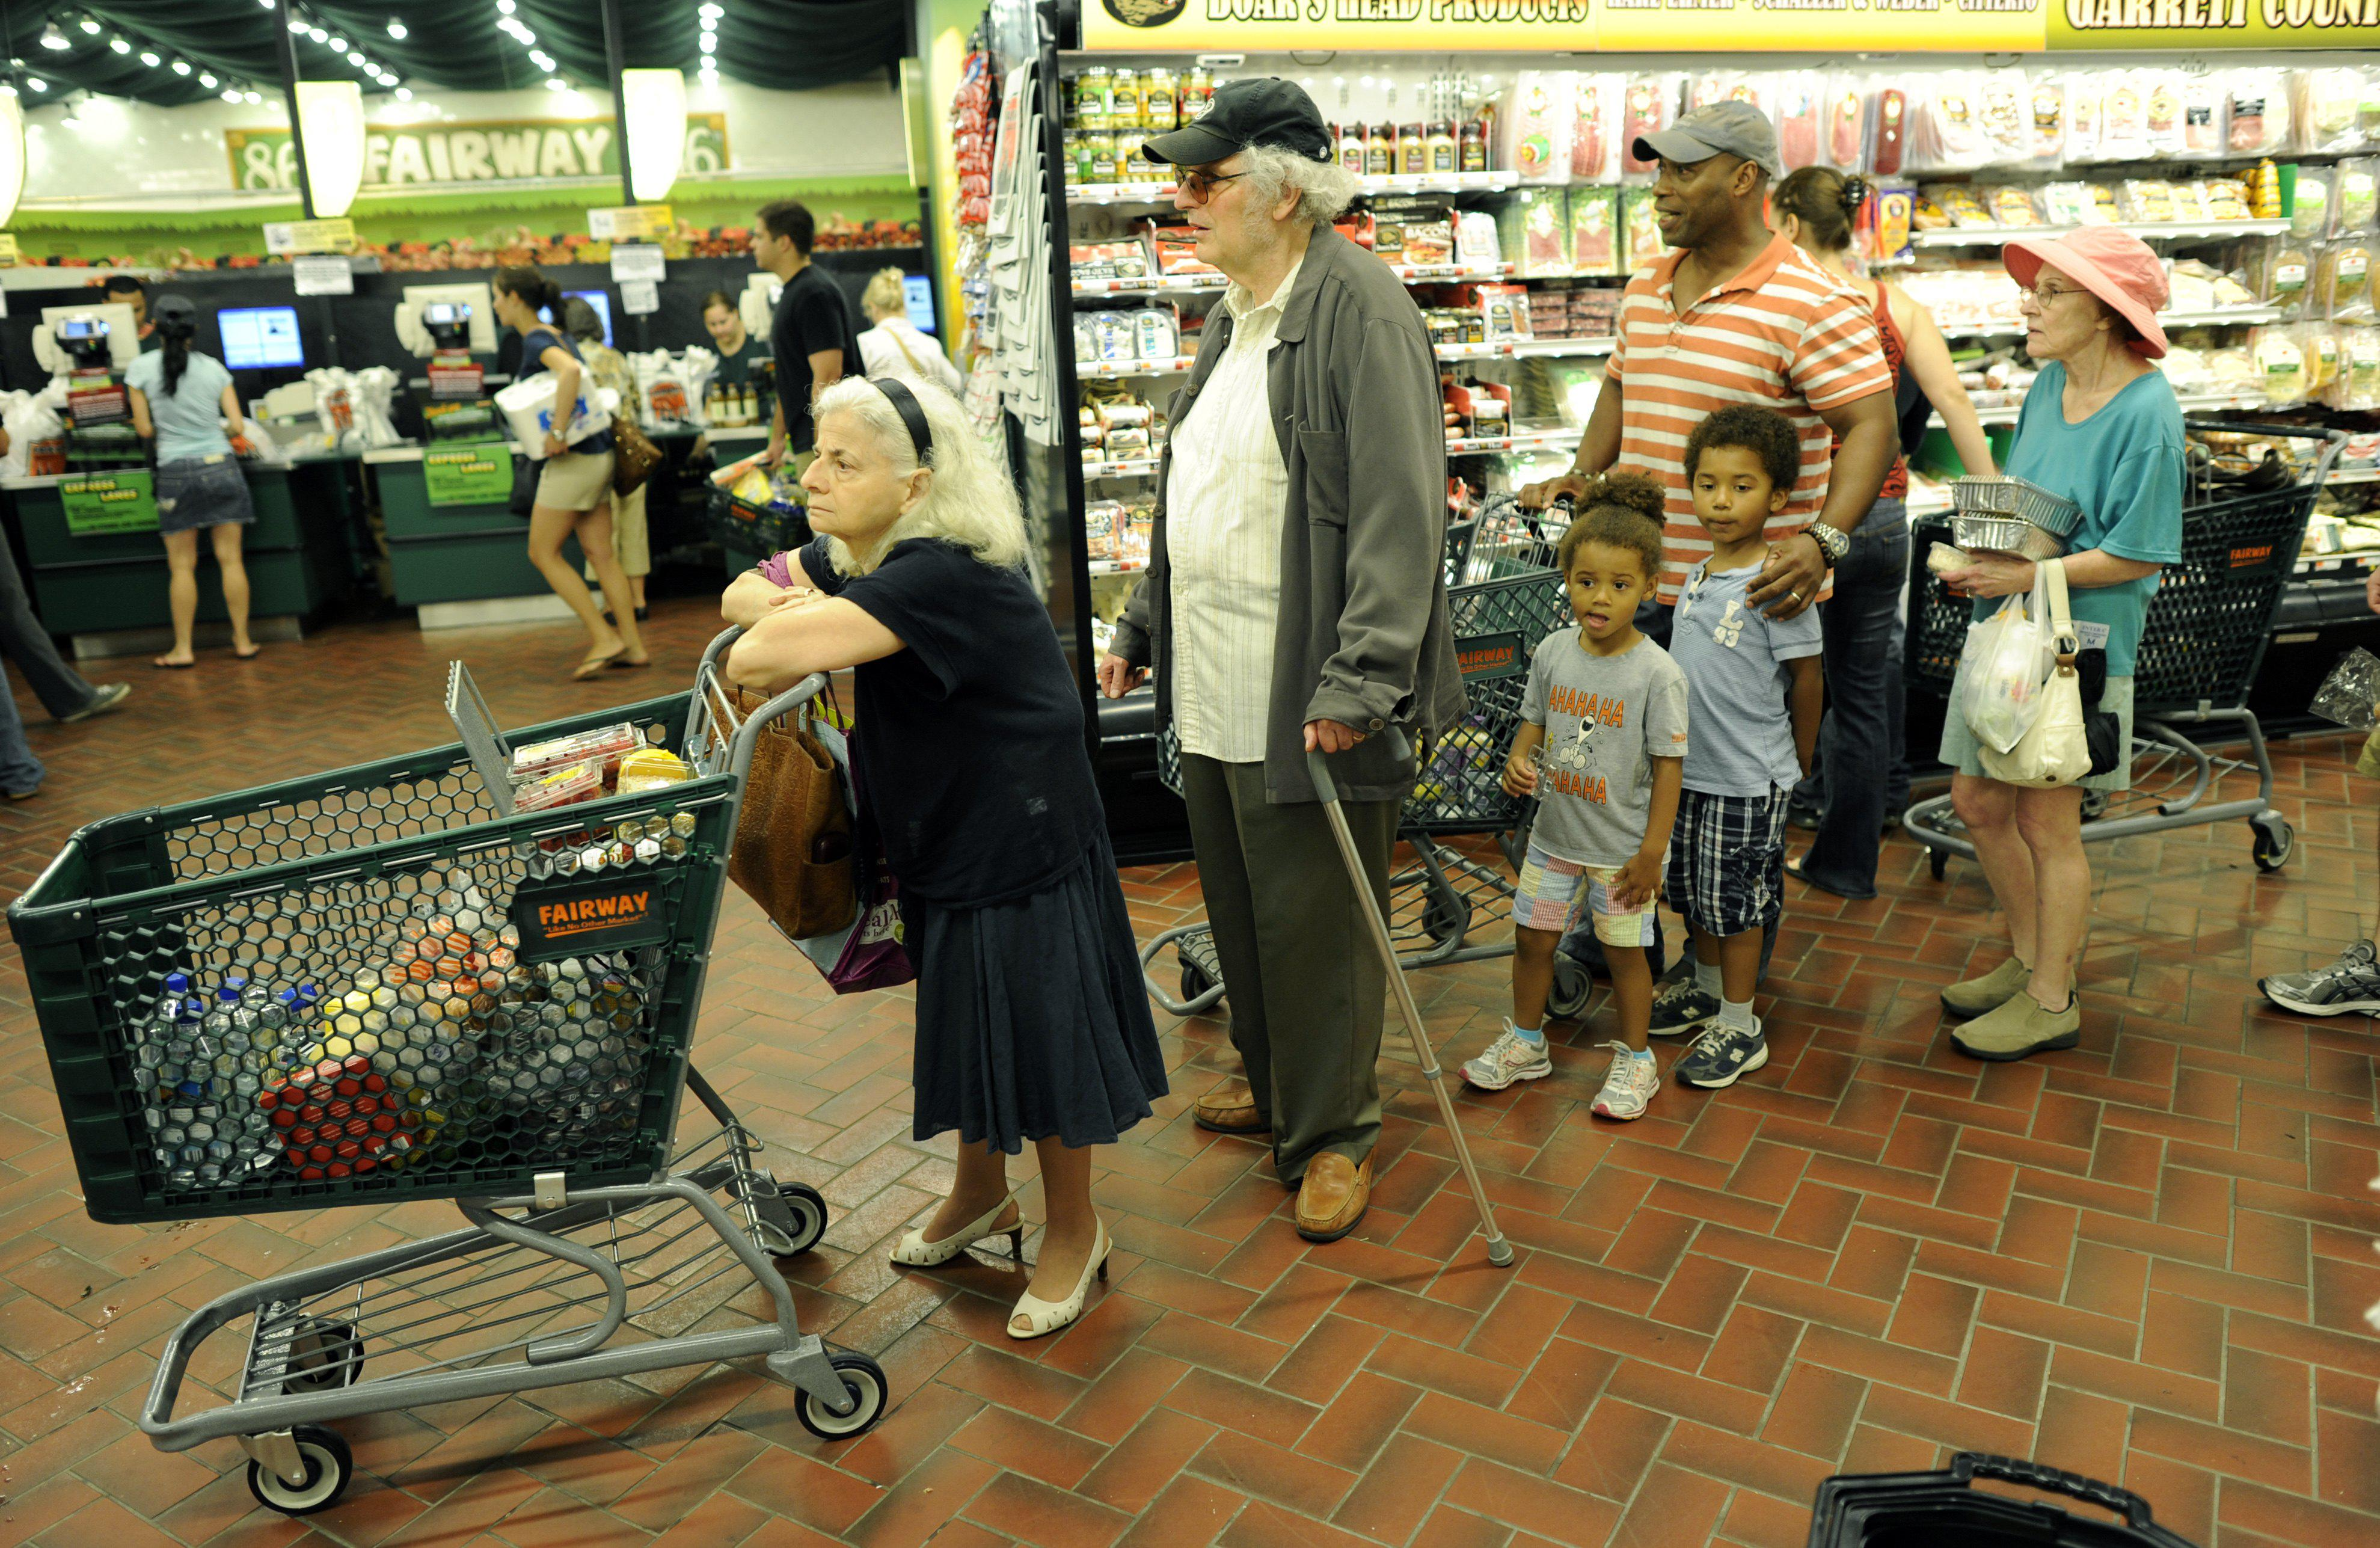 New Yorkers line up for the checkout line at the Fairway Supermarket on the Upper East Side of New York as Hurricane Irene continued toward the East Coast